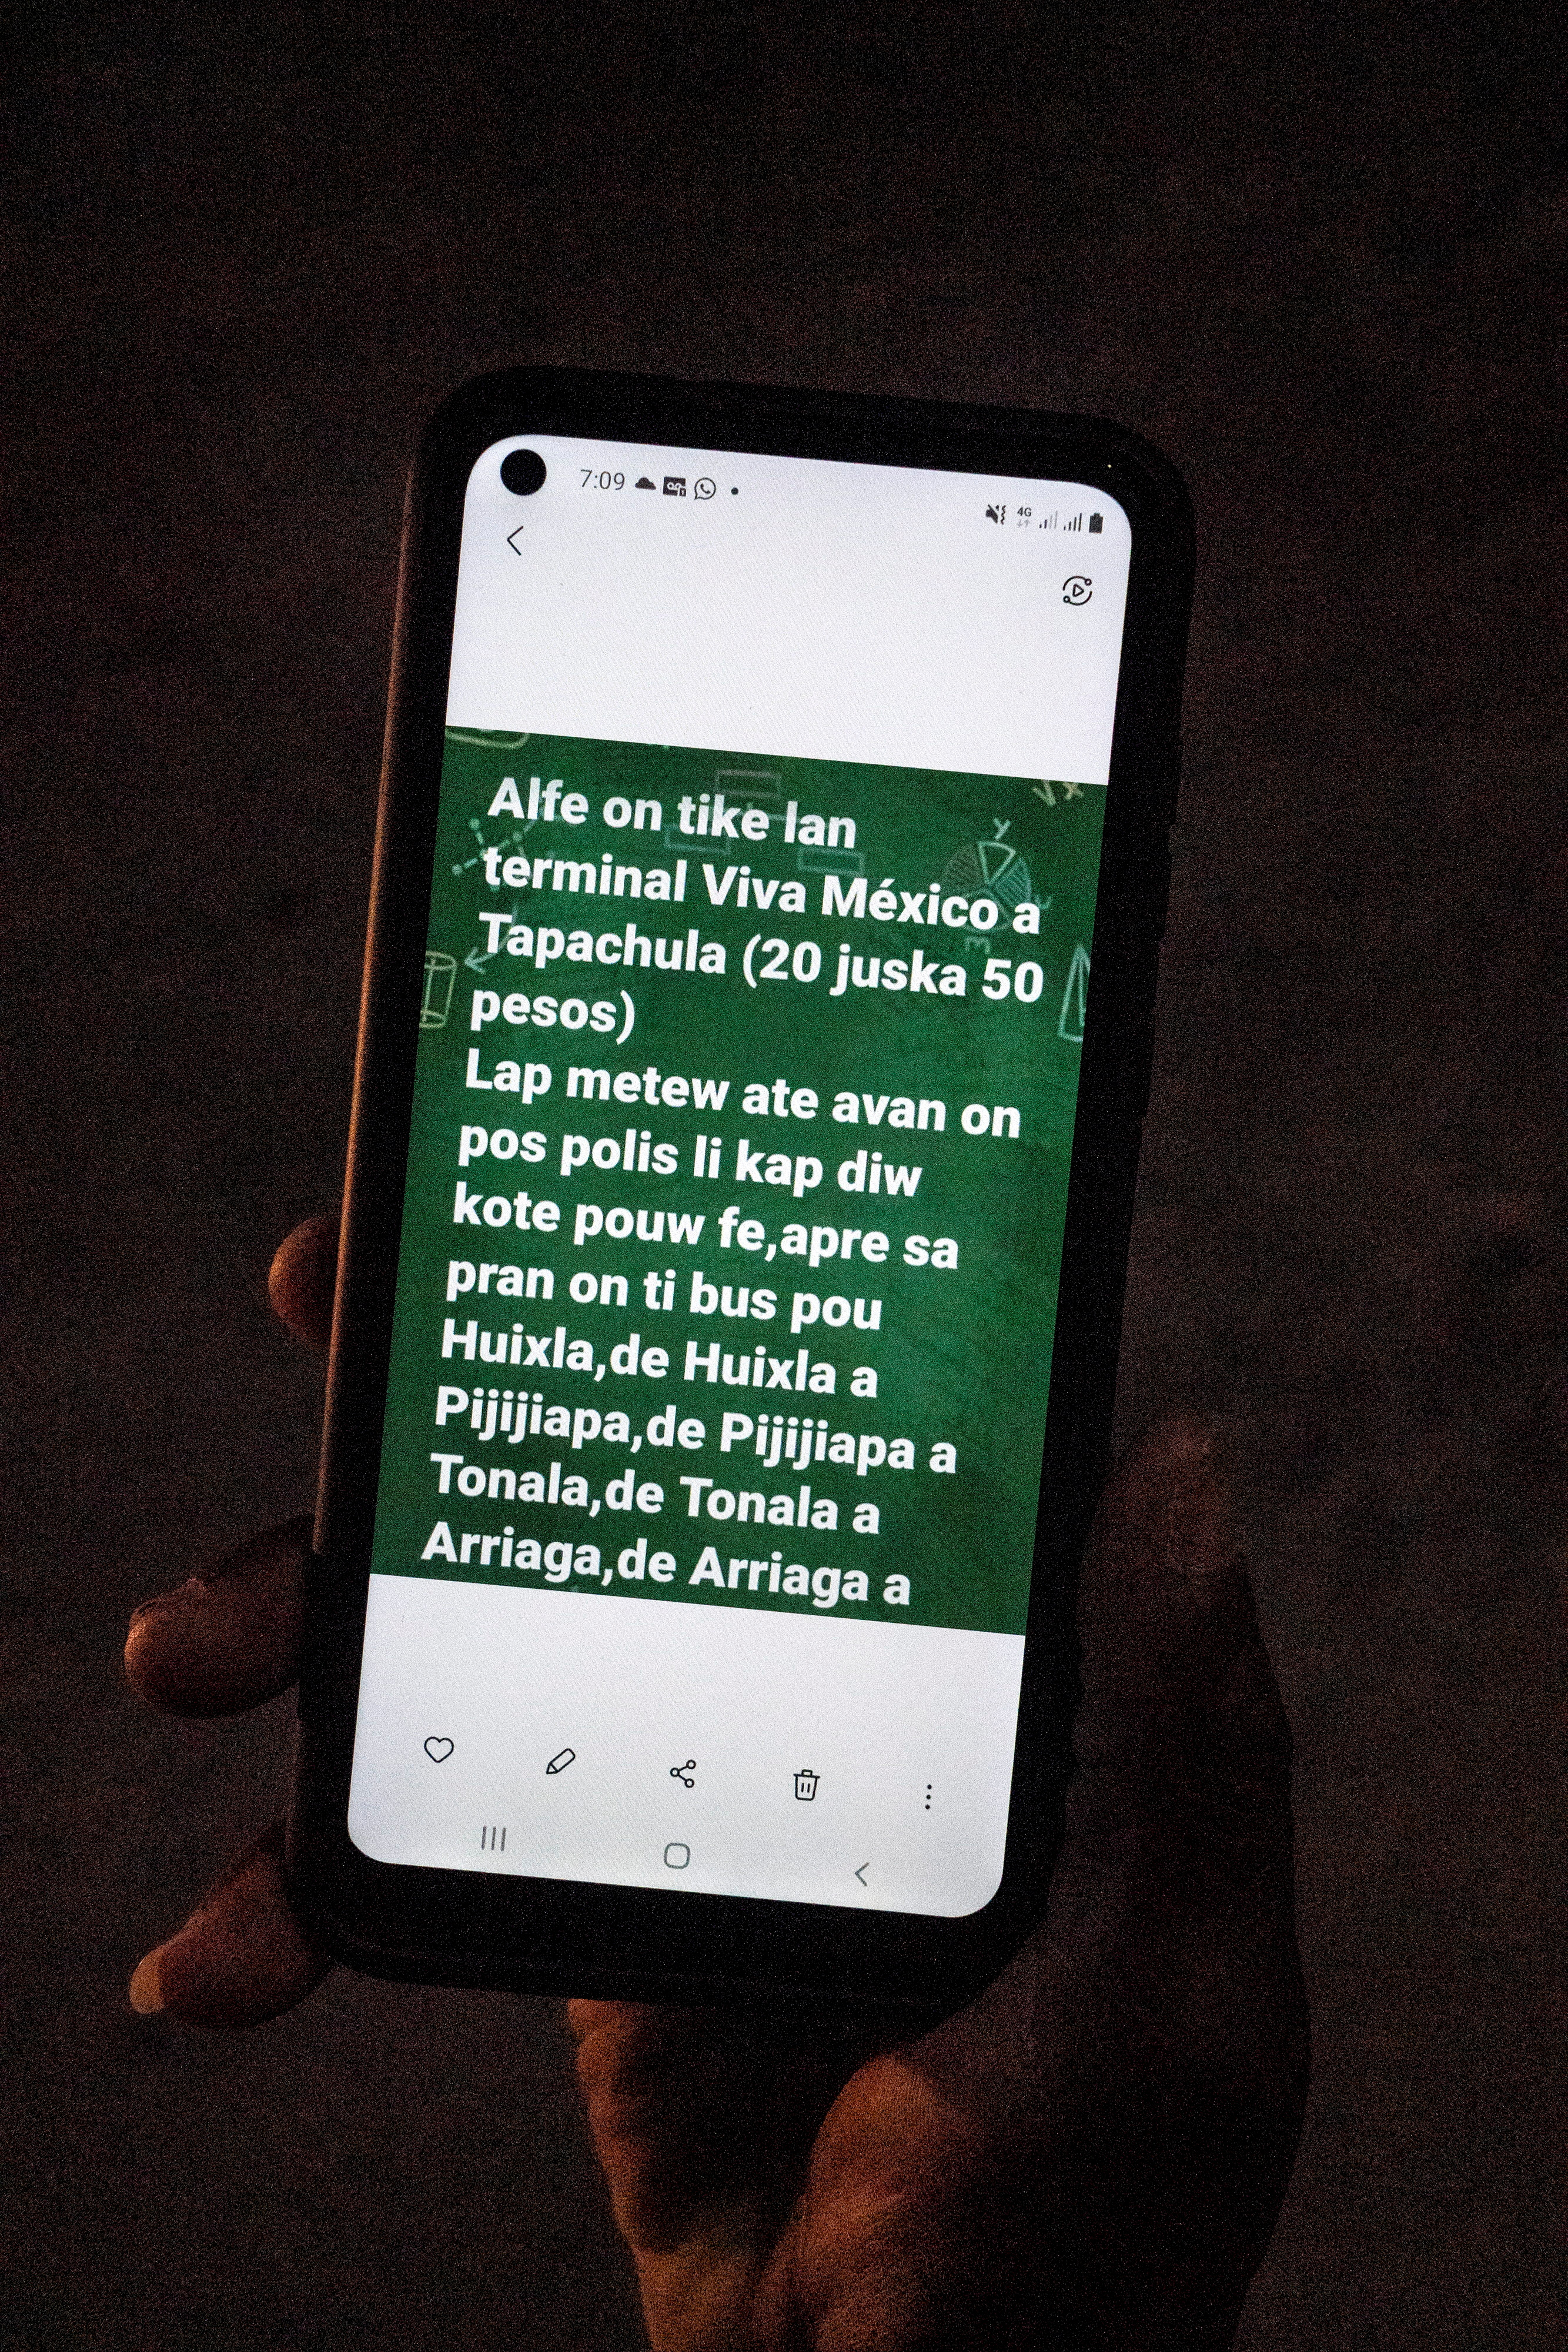 A migrant seeking asylum in the U.S. shows his smartphone with instructions on how to get to the U.S., in Ciudad Acuna, Mexico, September 17, 2021. REUTERS/Go Nakamura